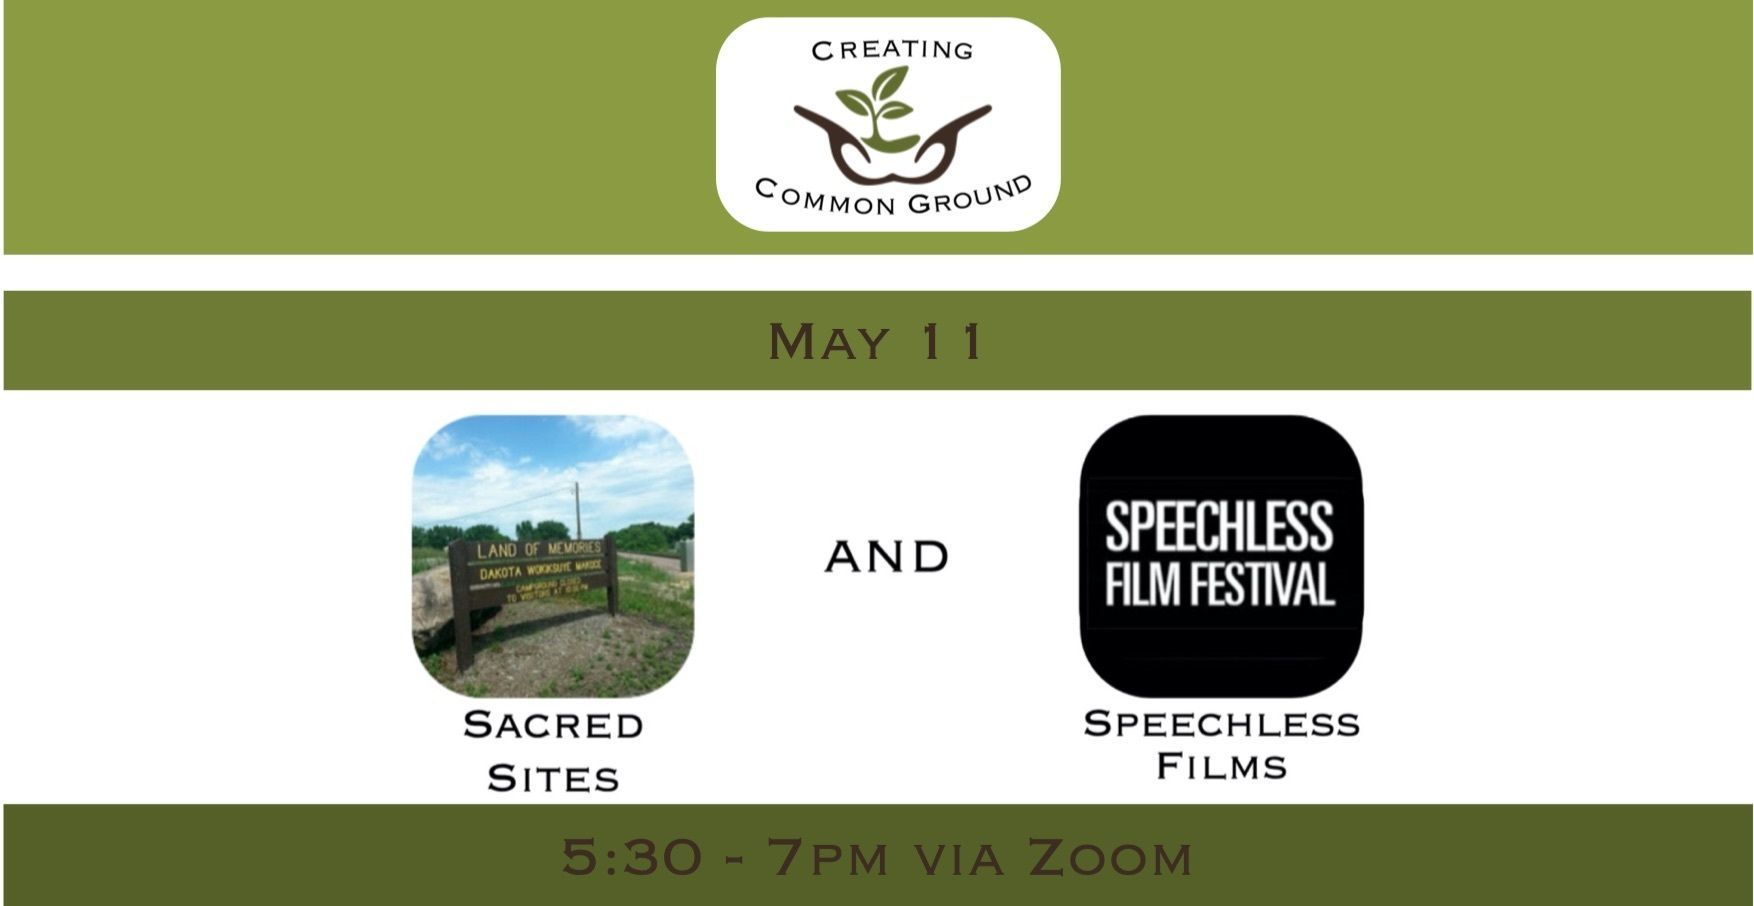 Creating Common Ground - Sacred Sites and Speechless Films